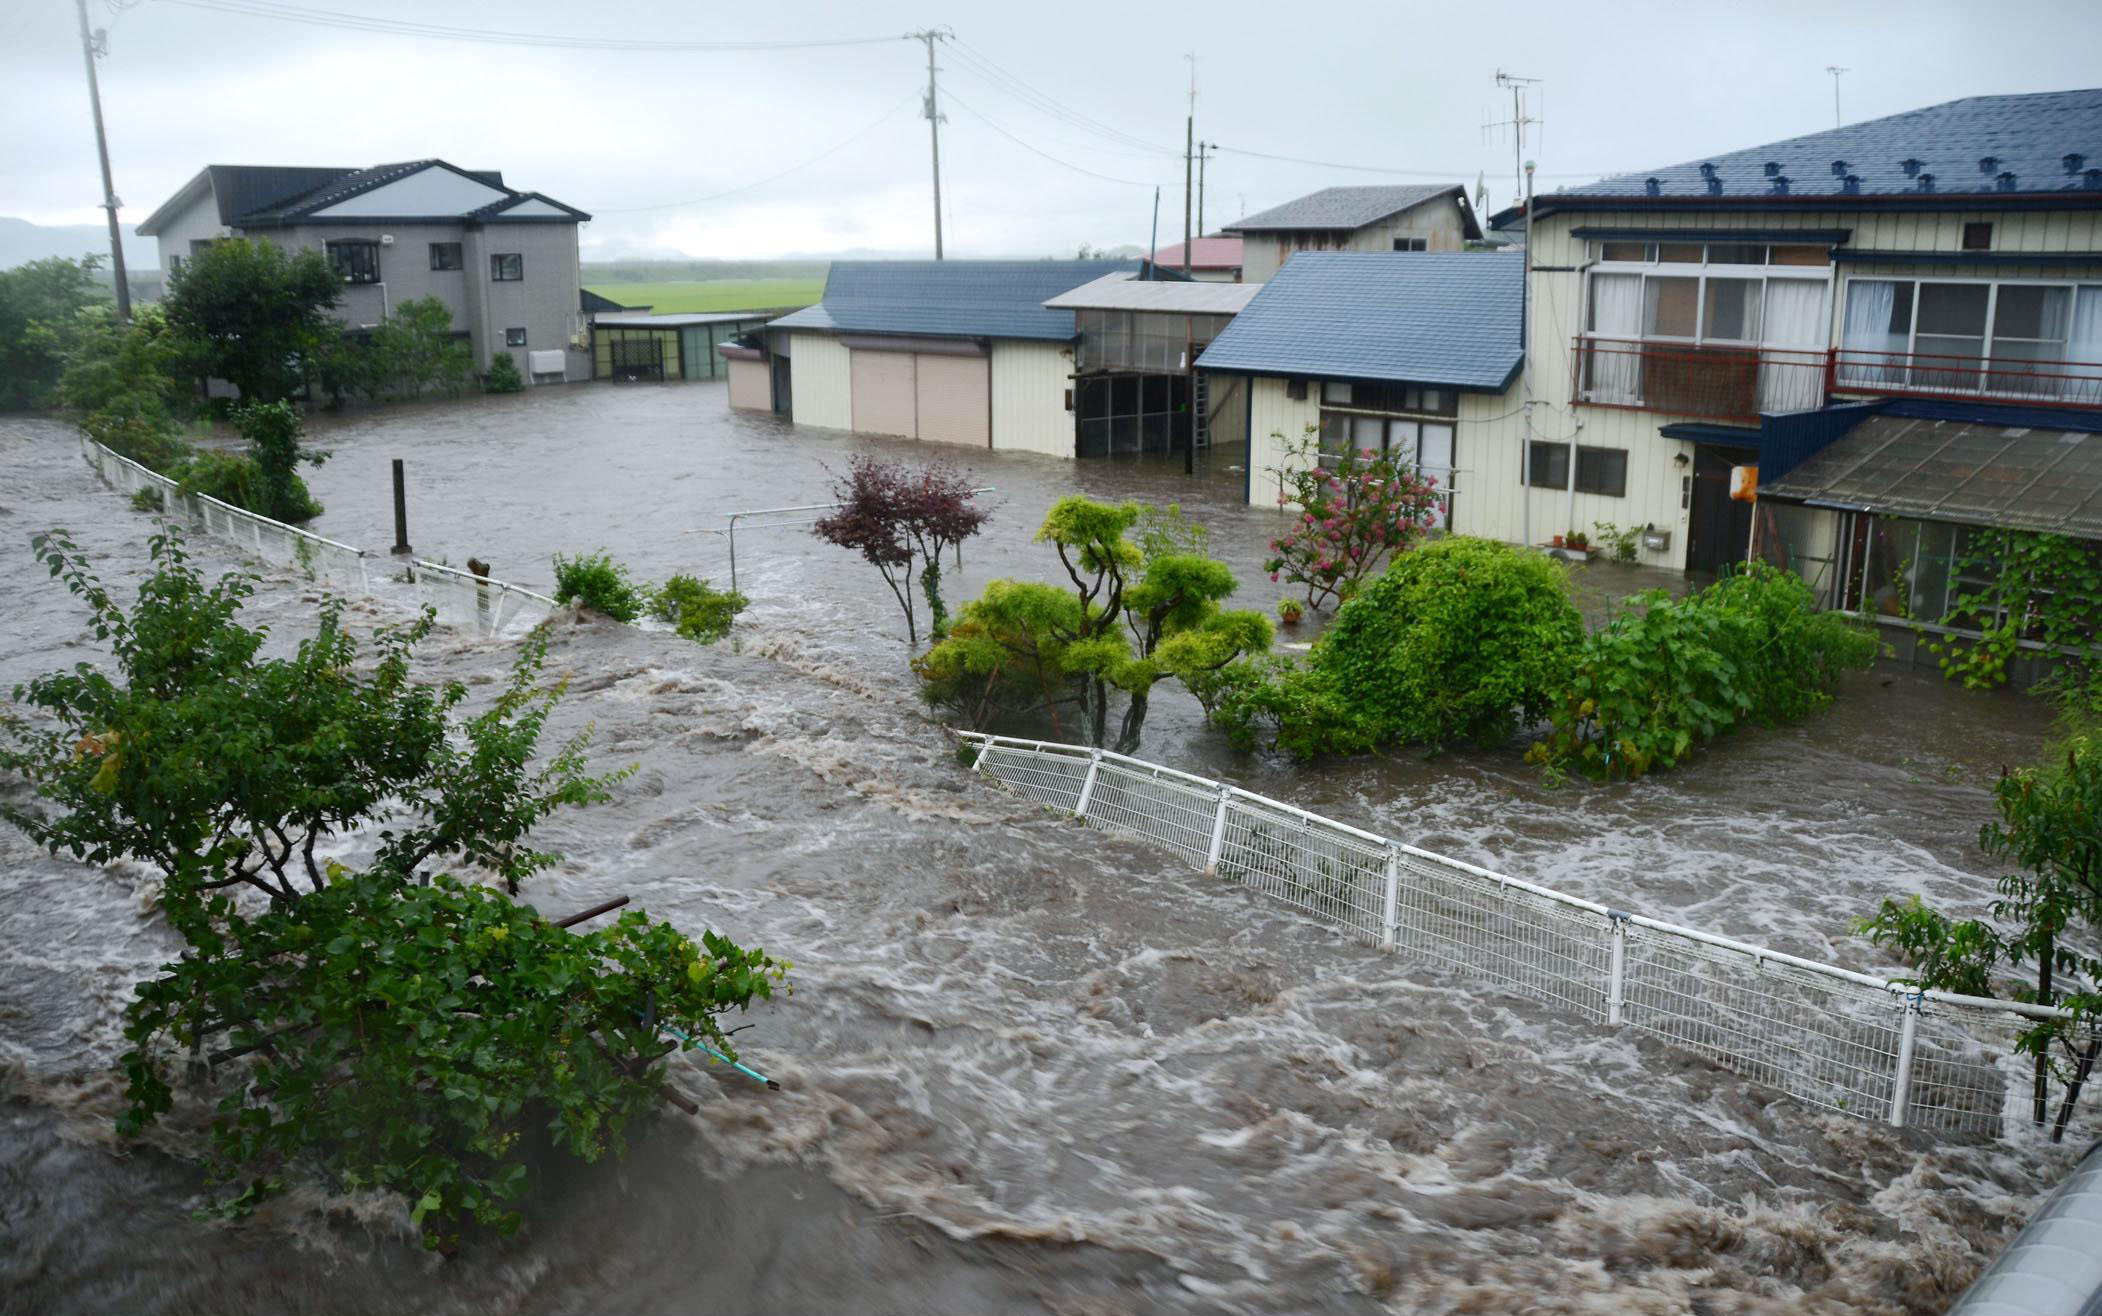 Low blow: Houses in Odate, Akita Prefecture, are flooded amid heavy downpours early Friday. | AKITA SAKIGAKE SHIMPO/KYODO